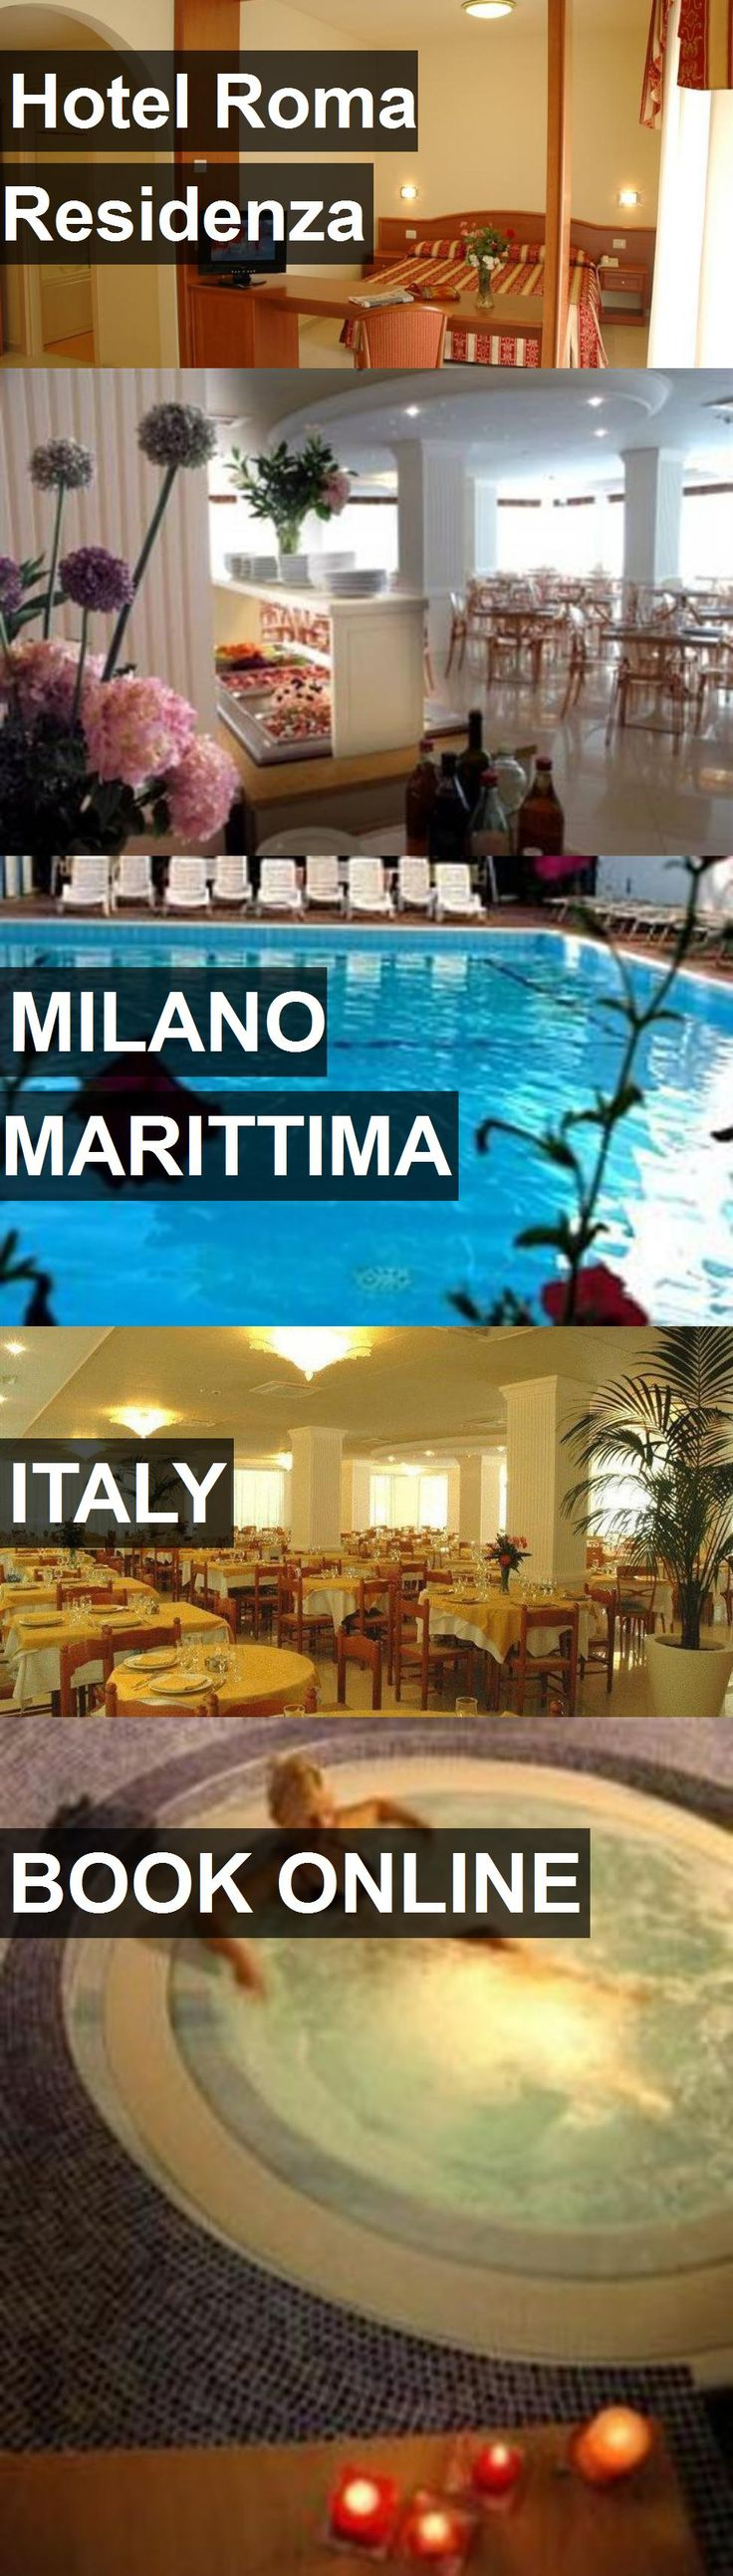 Hotel Roma Residenza in Milano Marittima, Italy. For more information, photos, reviews and best prices please follow the link. #Italy #MilanoMarittima #travel #vacation #hotel